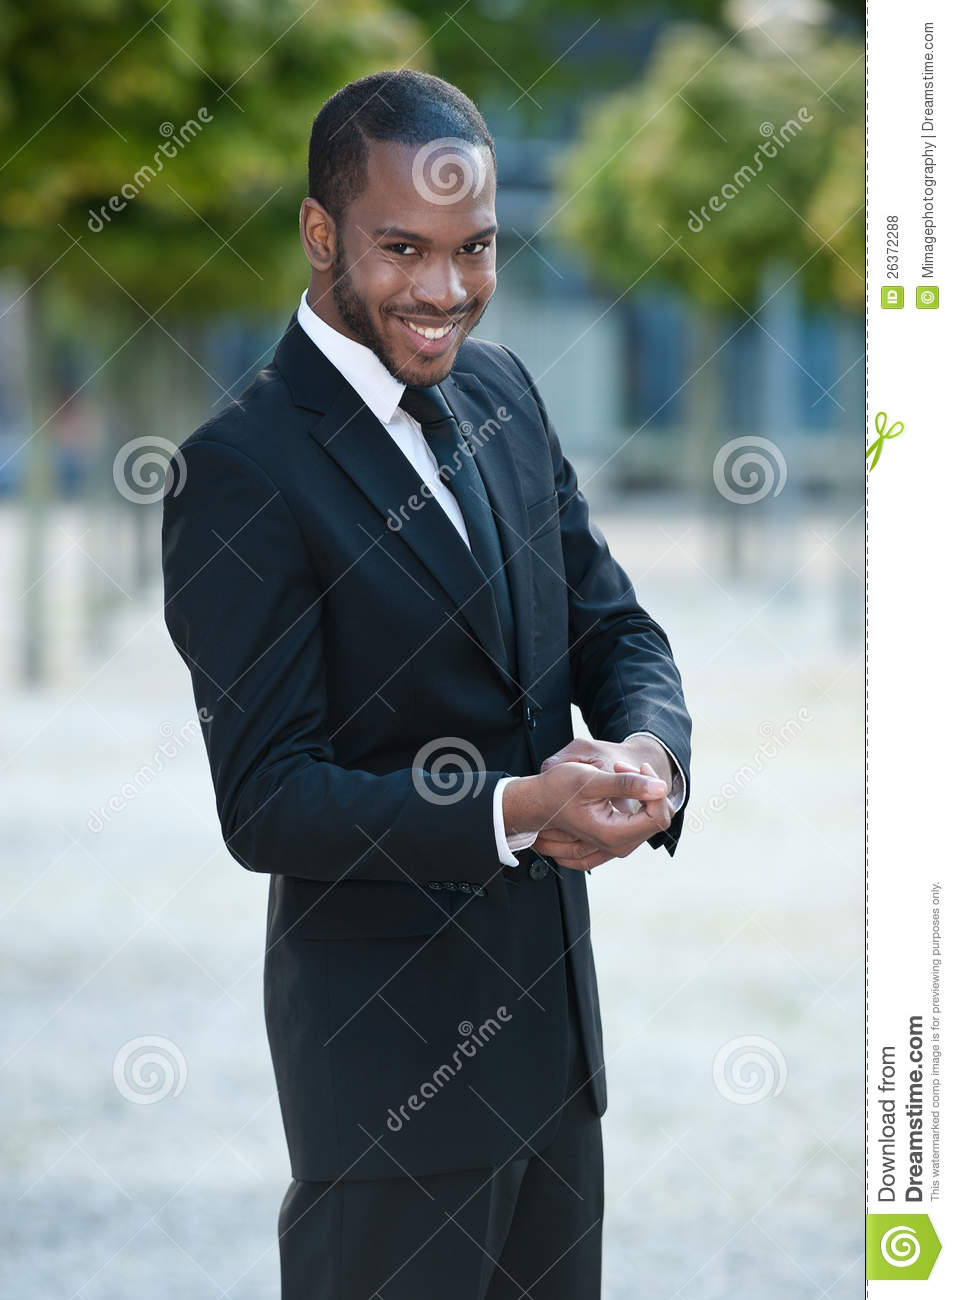 Young Black Teenage Men Playing Video Games: Young Black Man Smiling In A Suit Outside Stock Photo